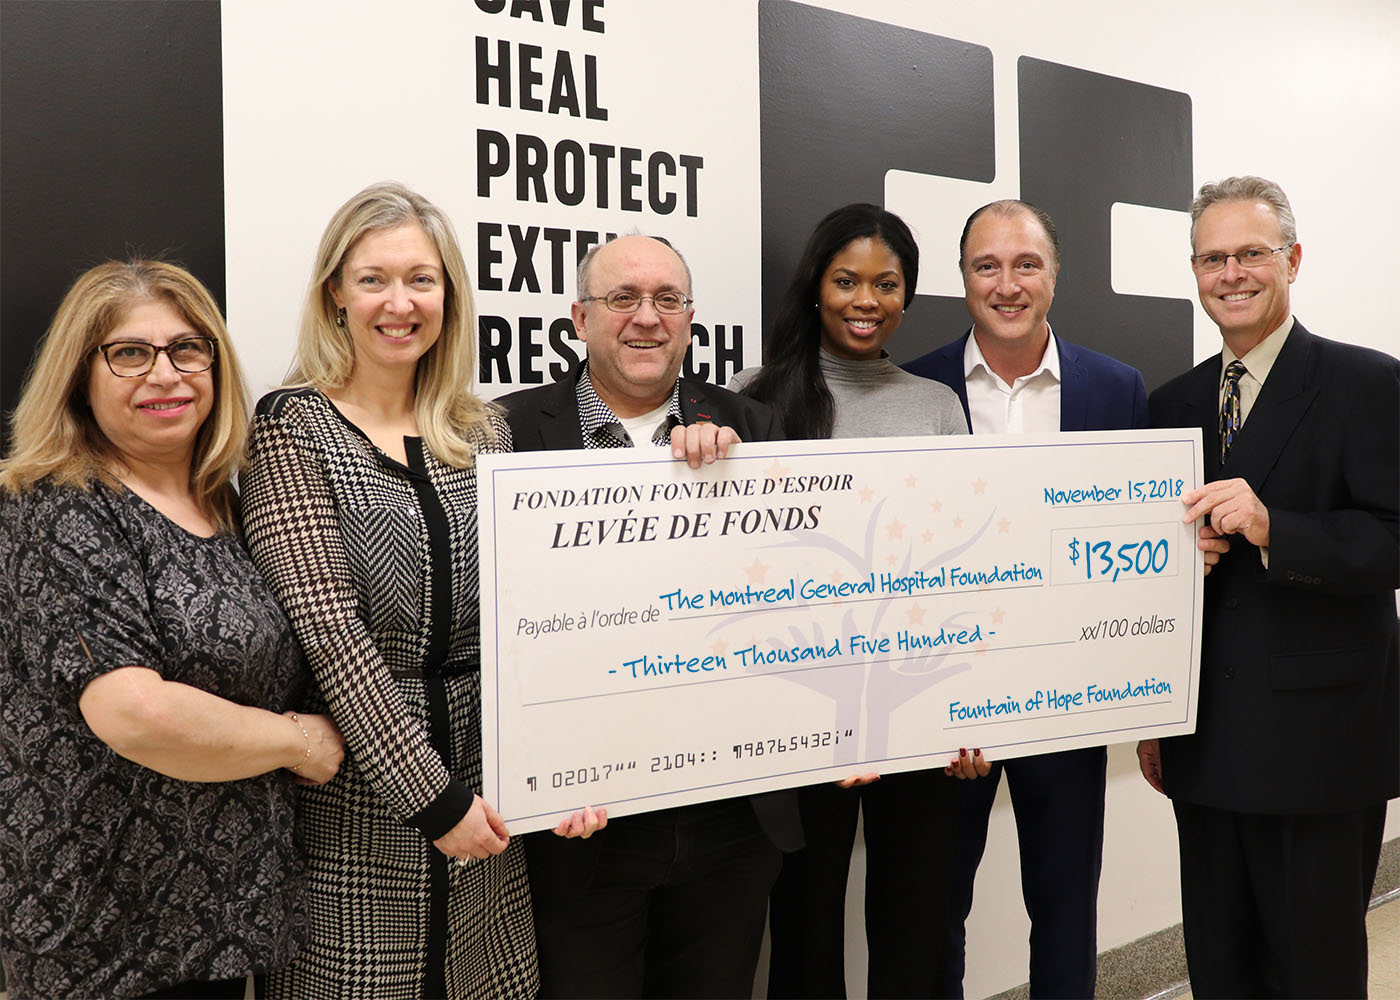 $ 13,500 for the Montreal General Hospital Foundation